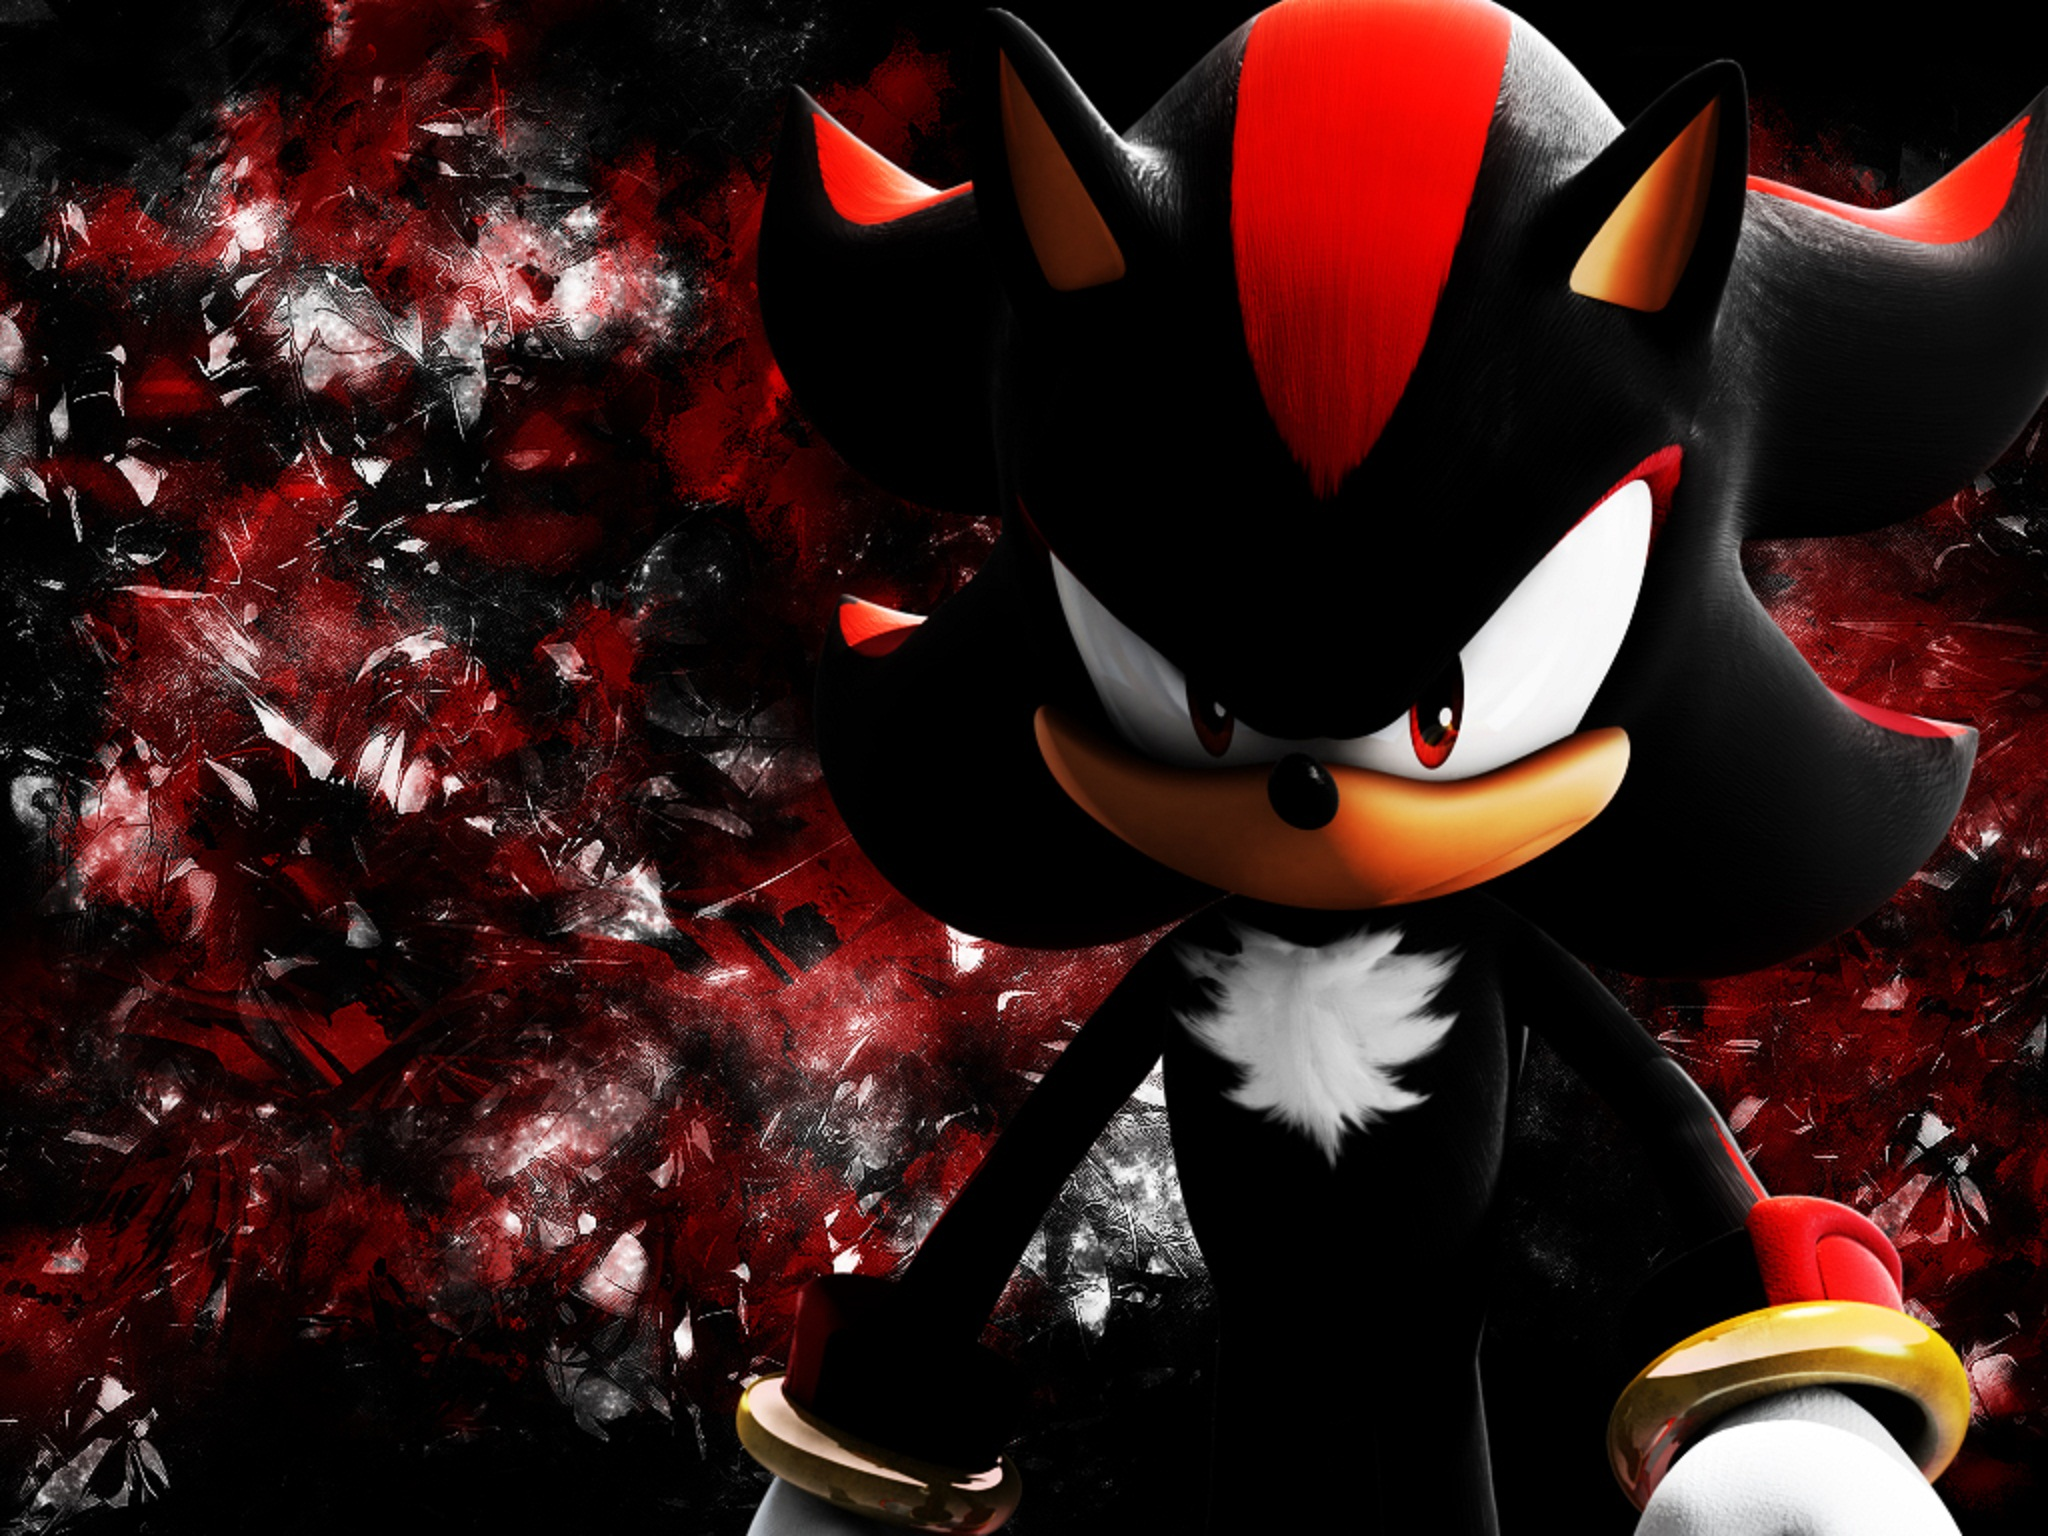 new sonic the hedgehog hd wallpapers - all hd wallpapers